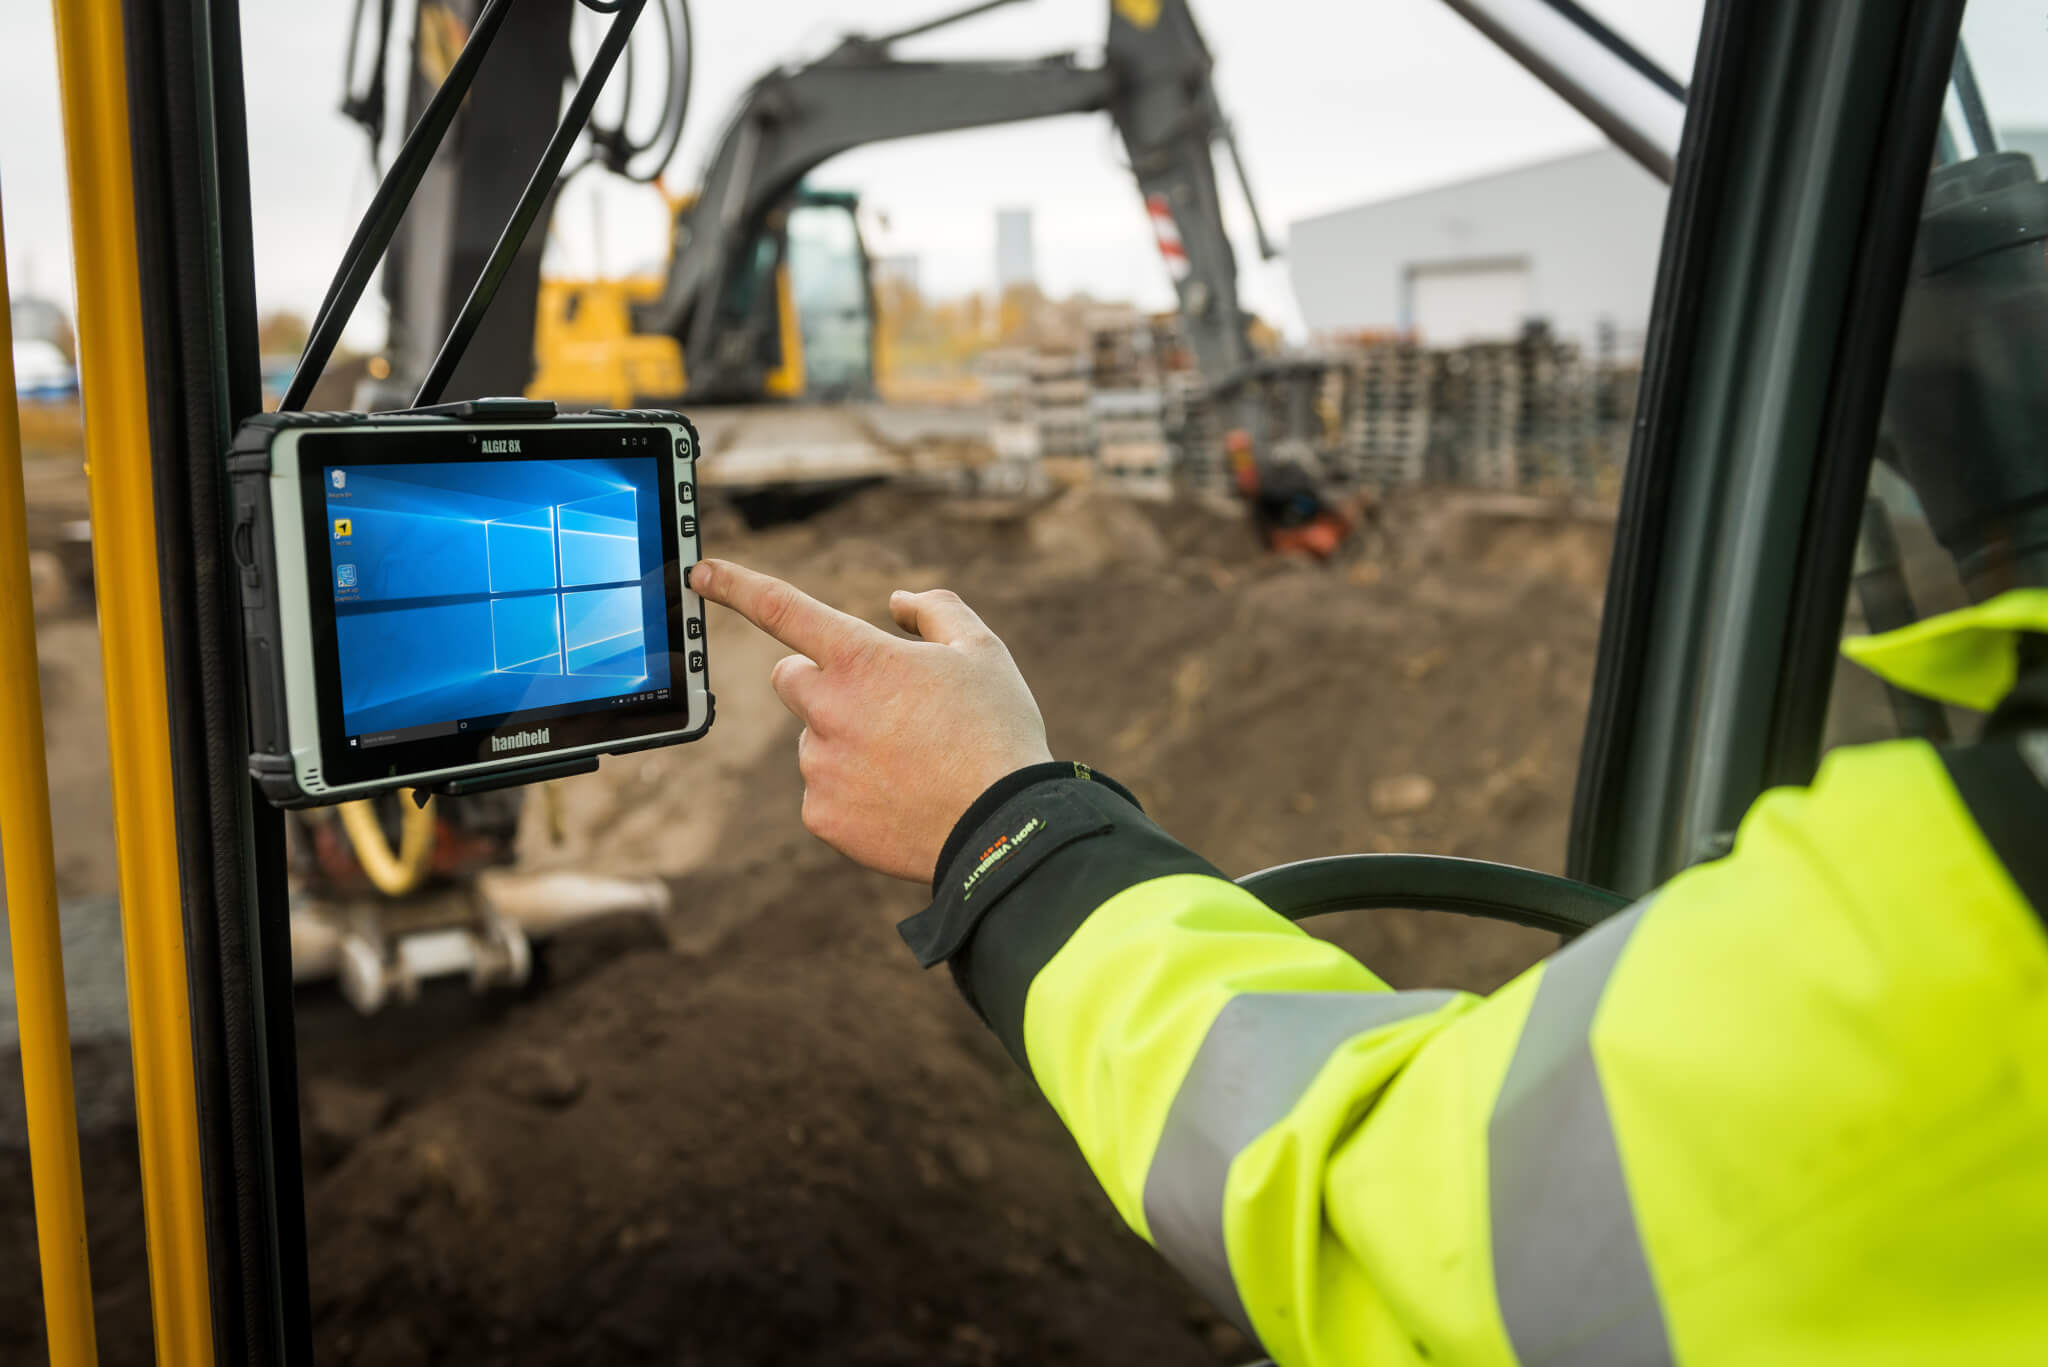 Infrastructure Work with the Handheld Algiz 8X Rugged Tablet